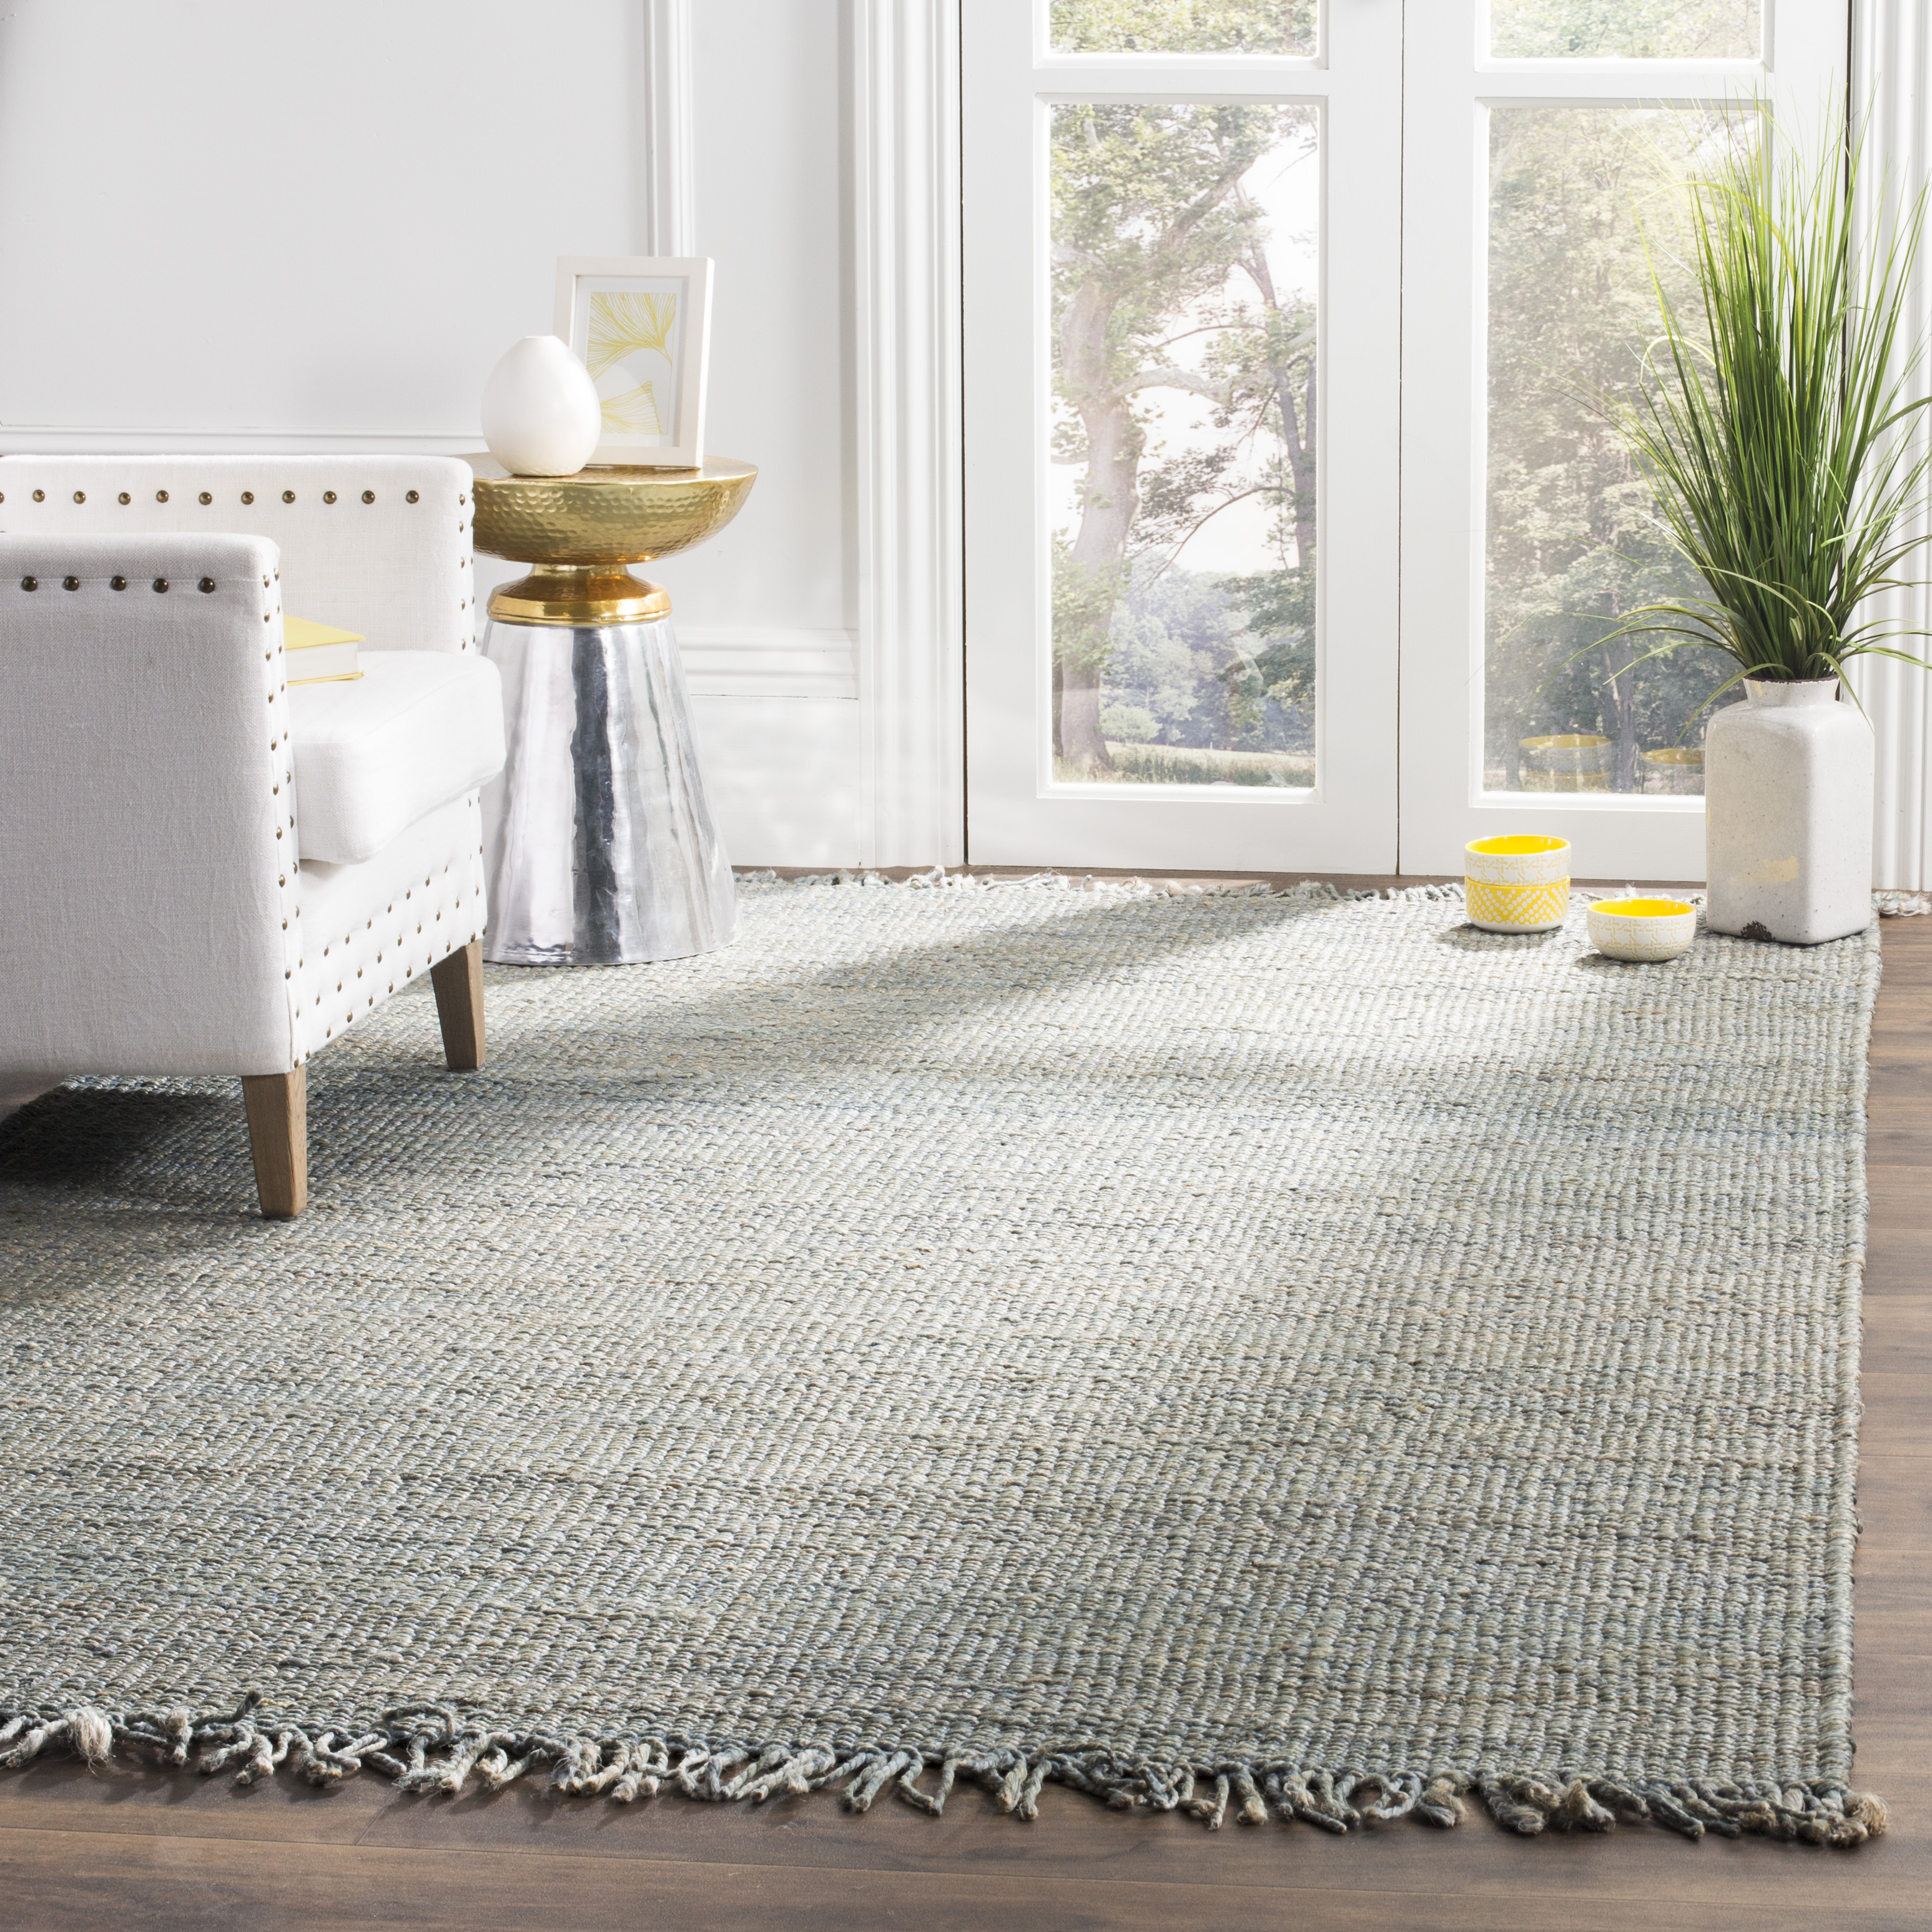 Safavieh Natural Fiber Clara Braided Area Rug or Runner